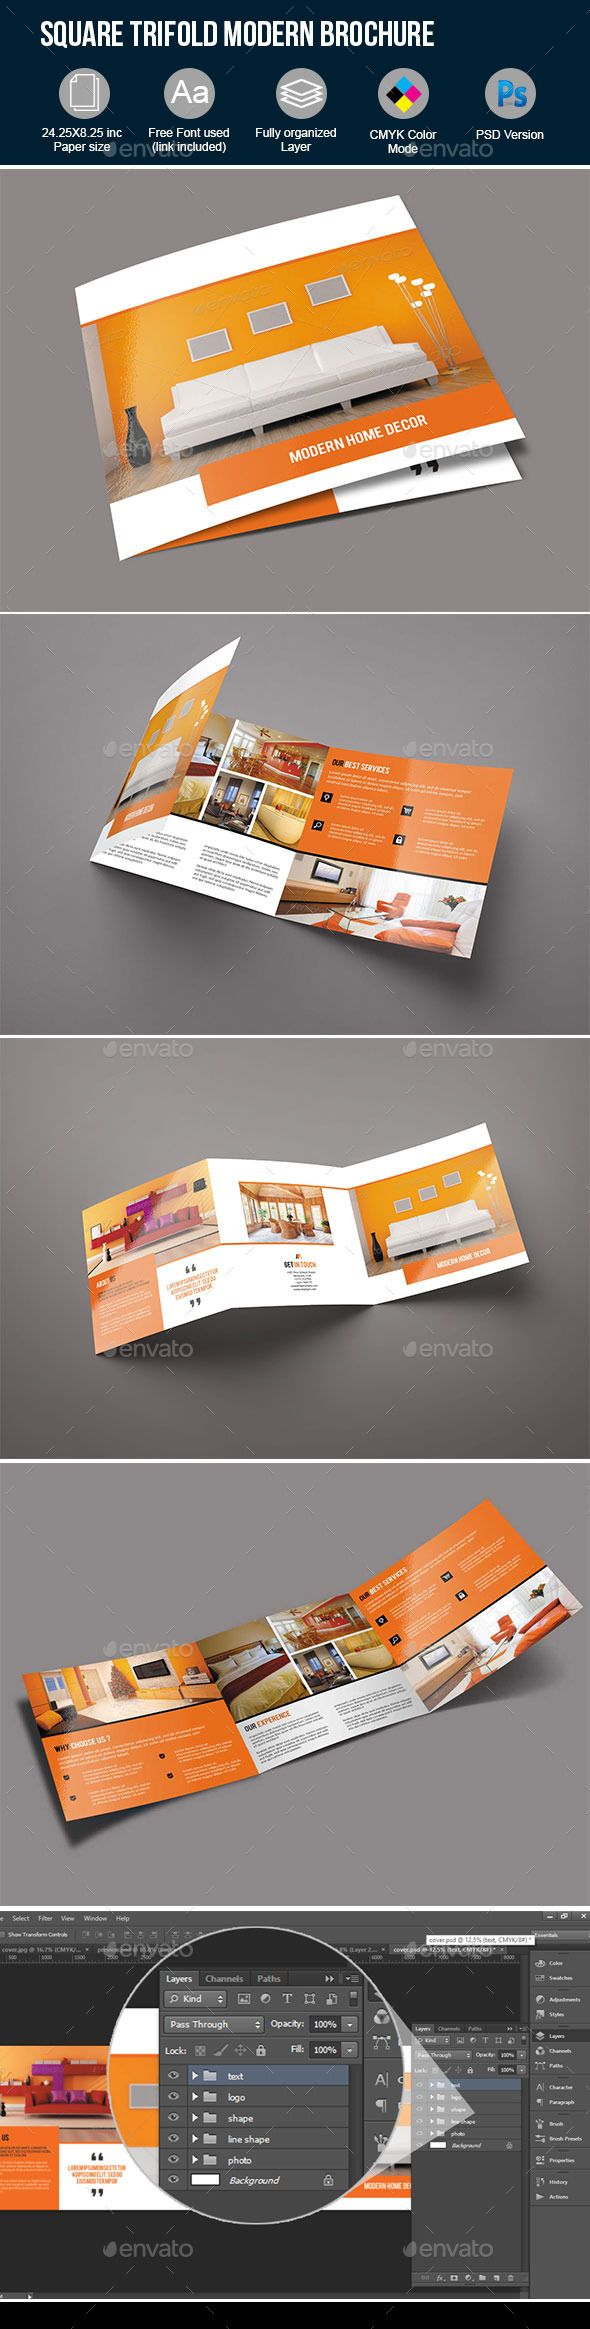 Square Trifold Modern Interior Brochure Template #design Download: http://graphicriver.net/item/square-trifold-modern-interior-brochure-/12520934?ref=ksioks